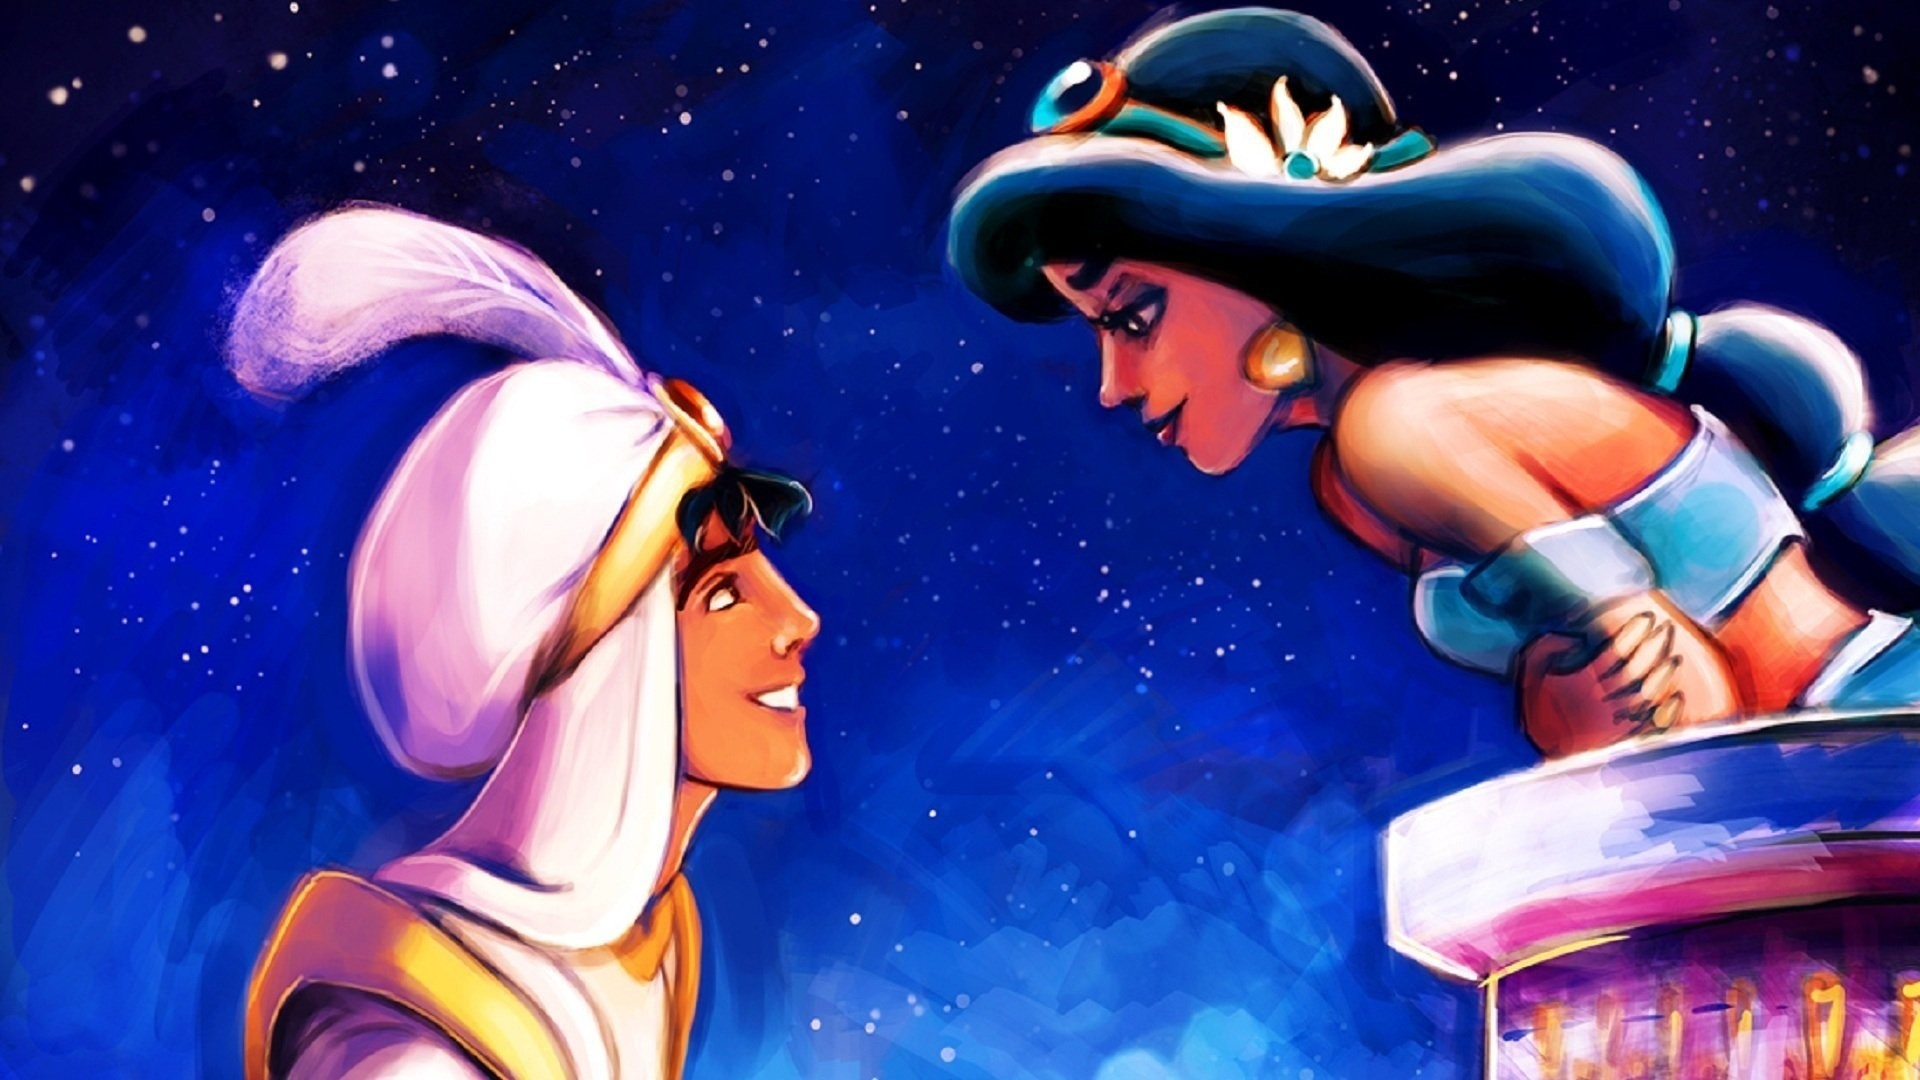 Aladdin Wallpapers 67 Images